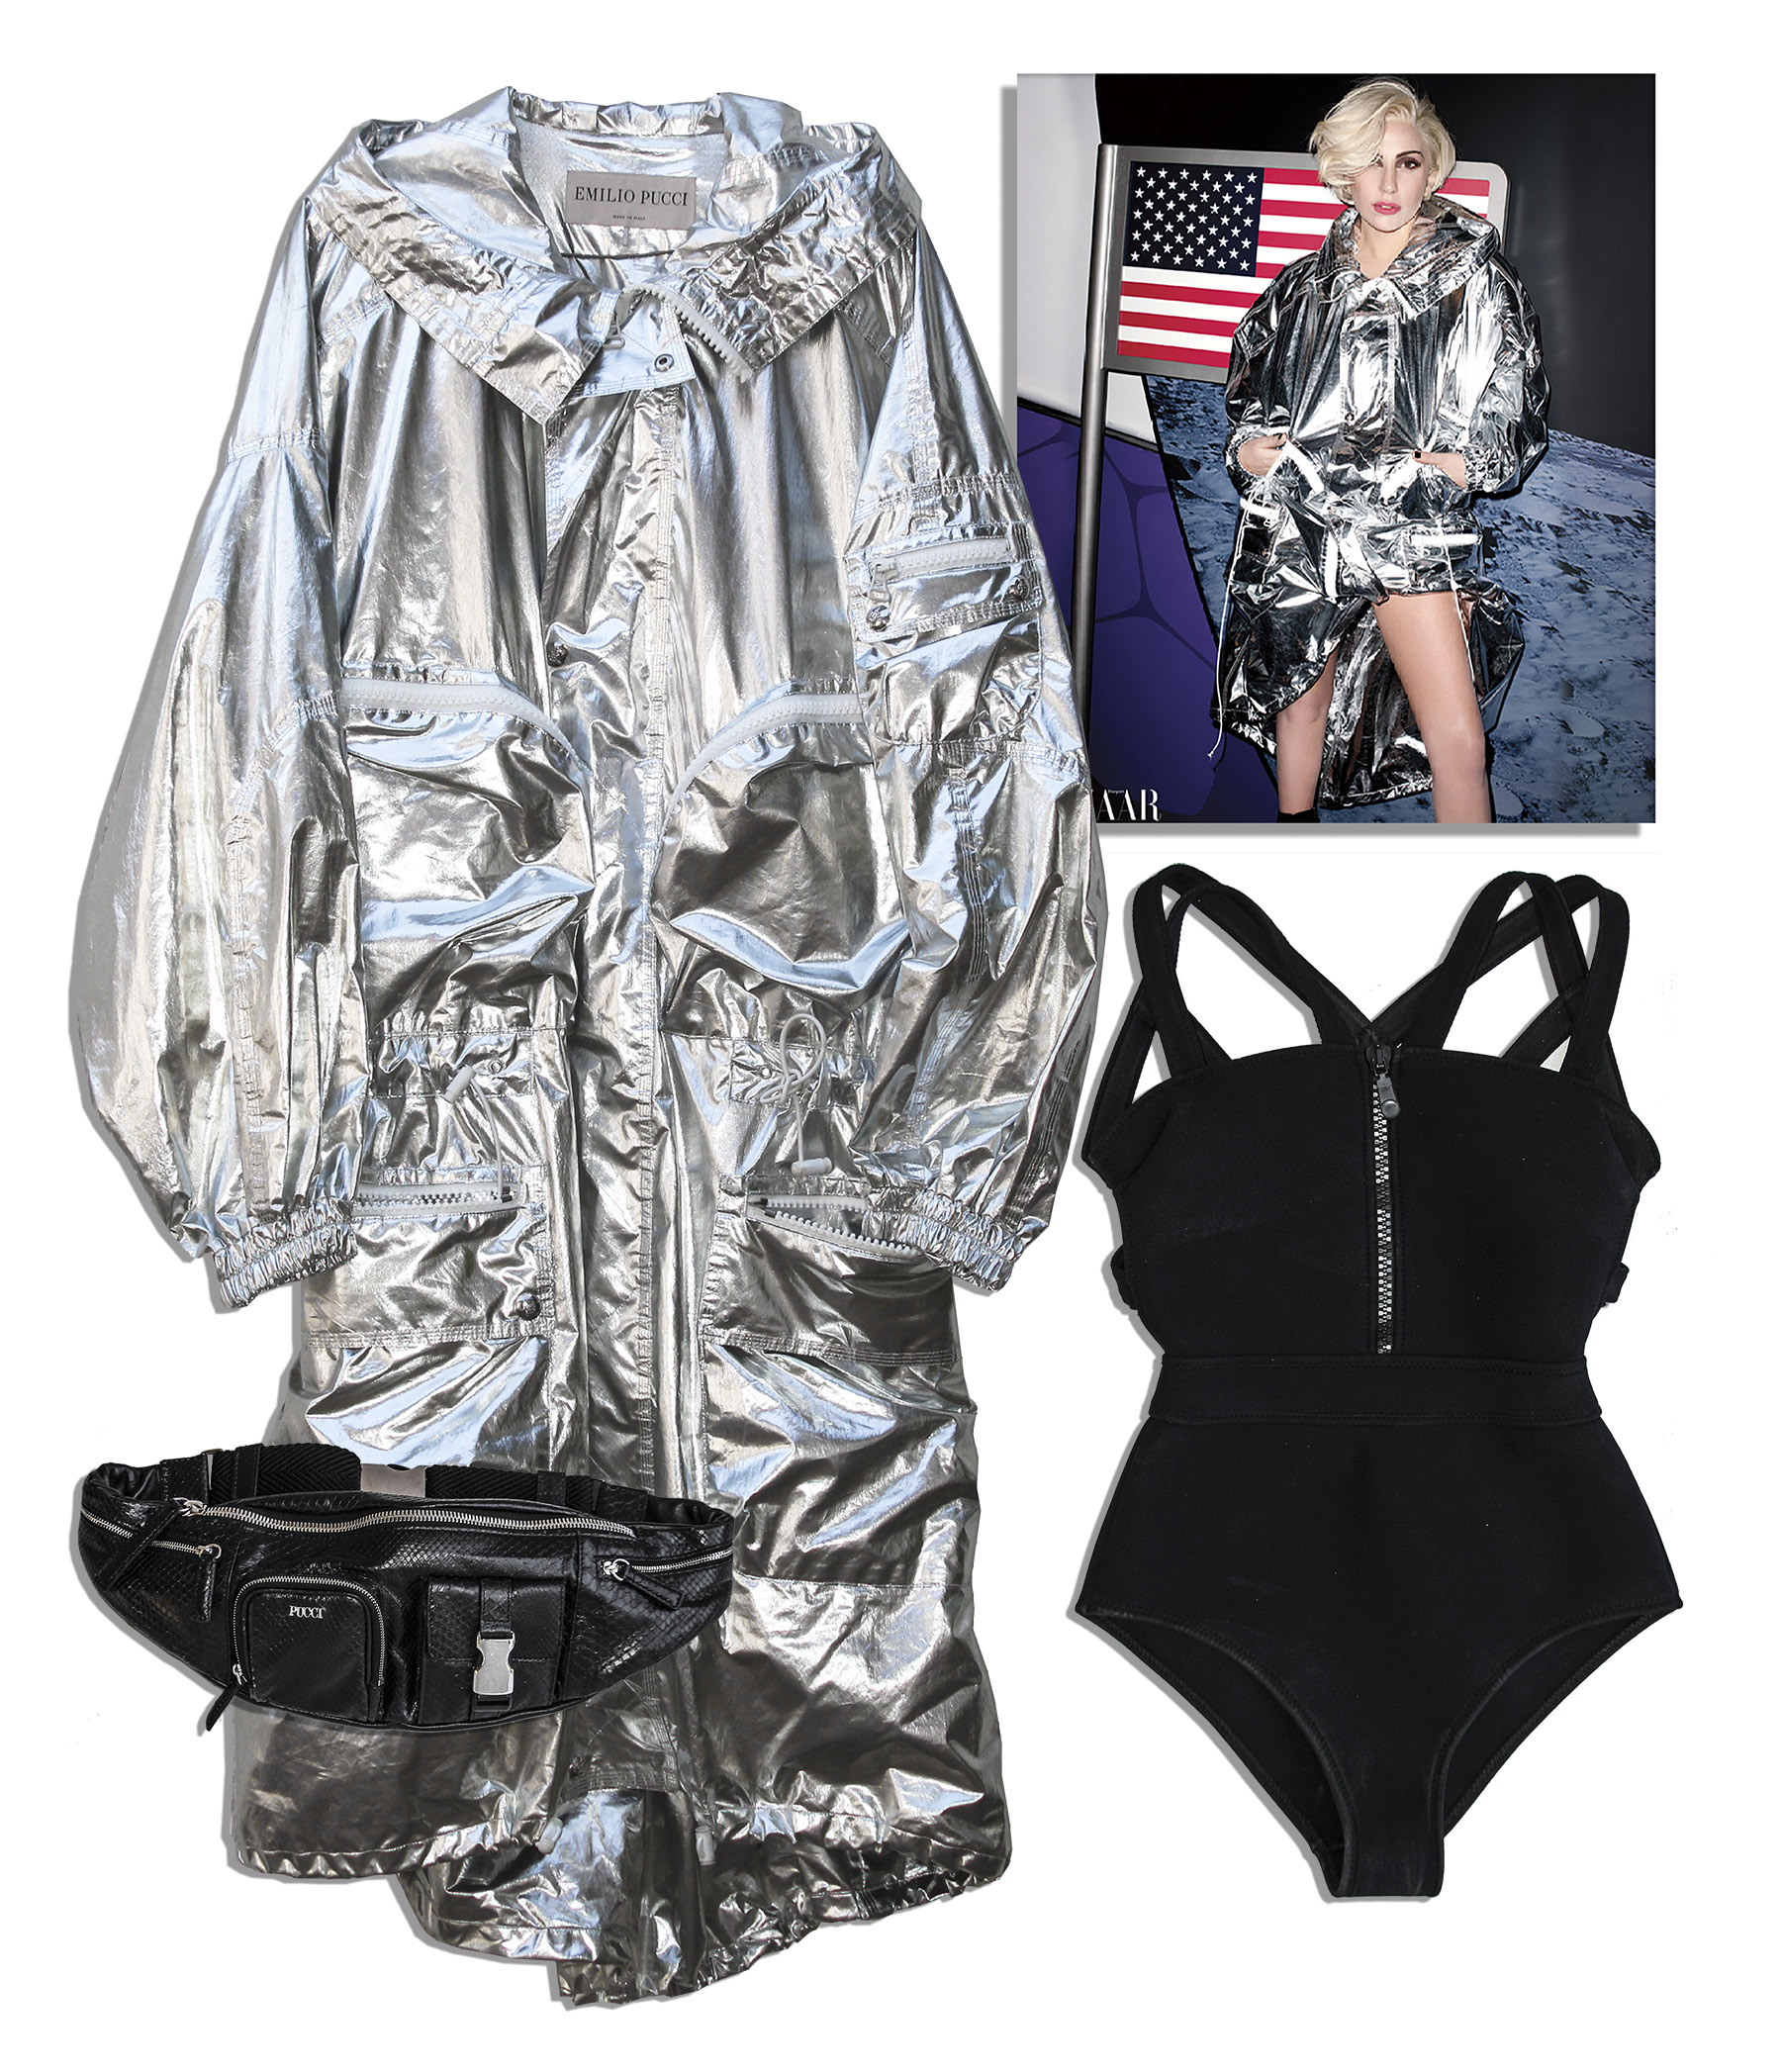 Lady Gaga costume Lady Gaga Worn Emilio Pucci Coat, Pucci Bodysuit & Pucci Python Leather Bag From Her Harper's Bazaar Cover Shoot